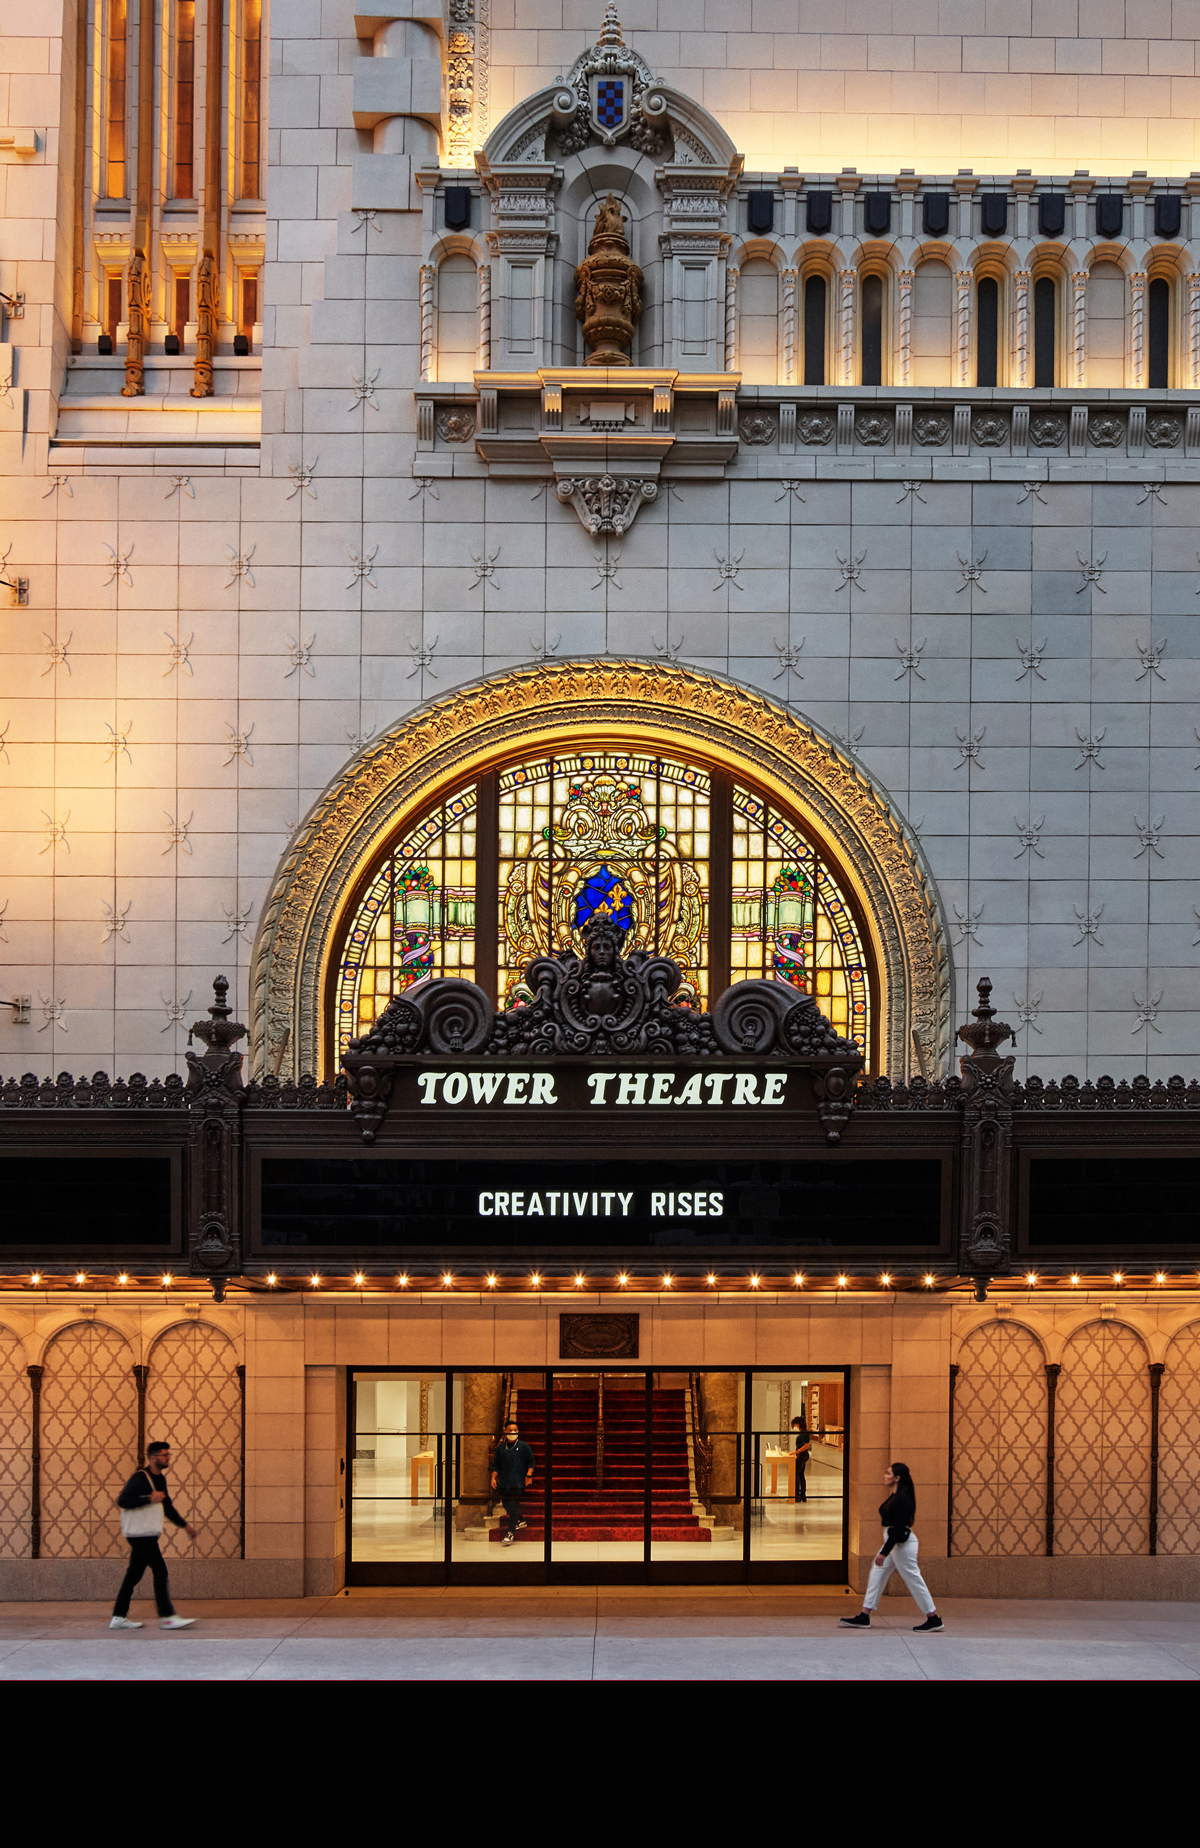 Tower Theater Apple Store Launches Thursday in LA